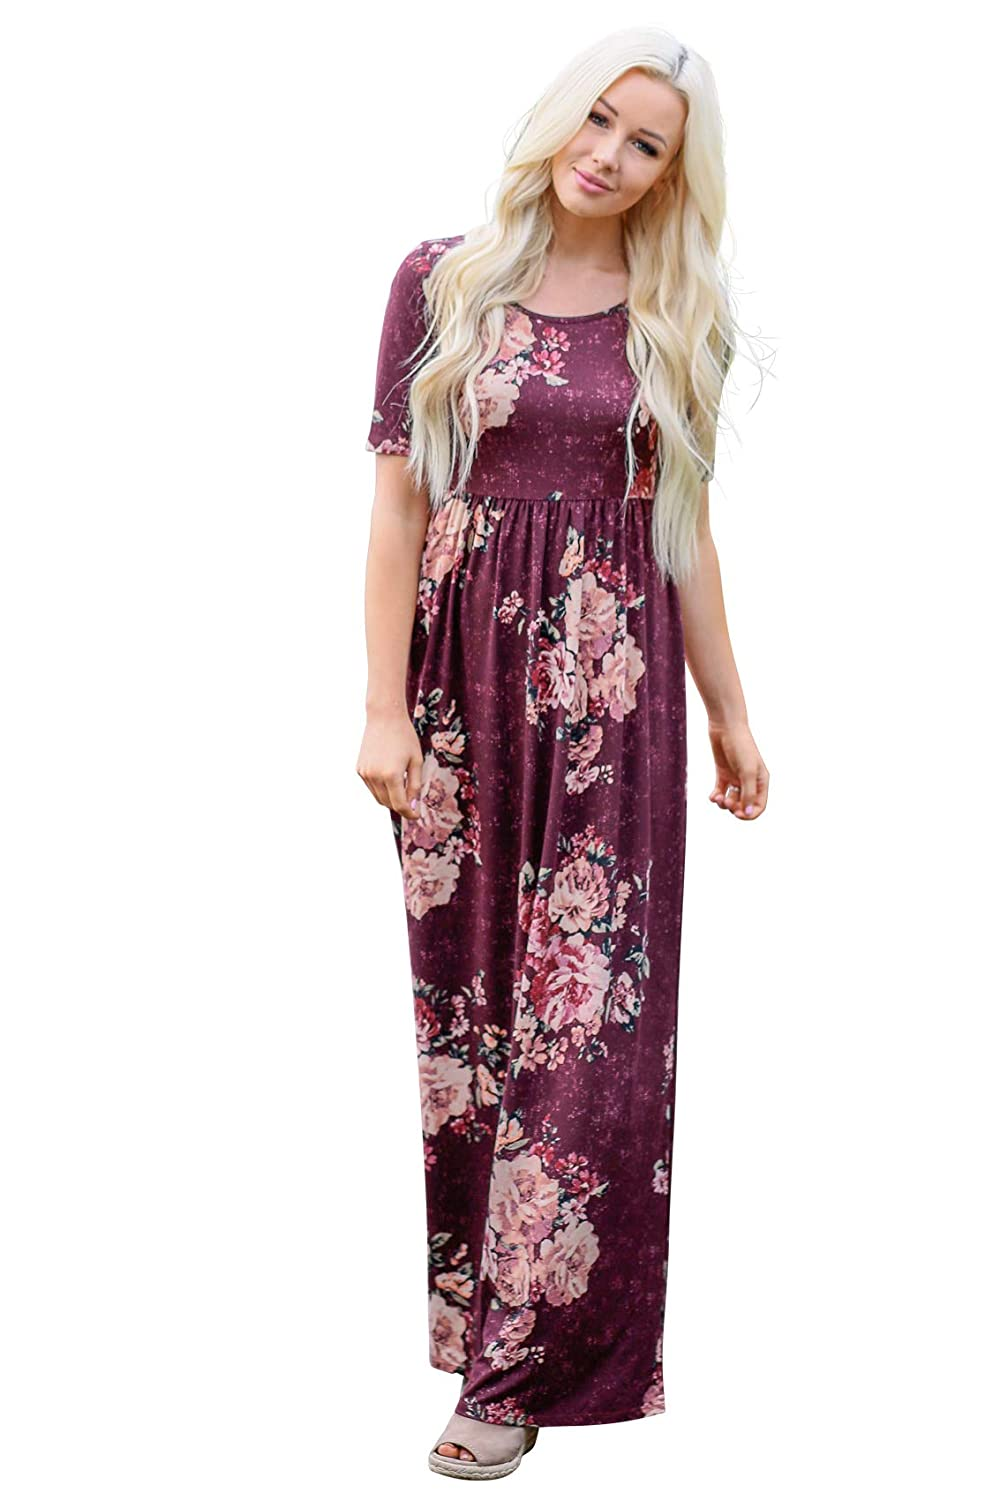 1c8dea0751098 Easily the most comfortable dress you've ever worn! Look & feel amazing in  this classic piece! Modest floor-length floral maxi dress with half-sleeves.